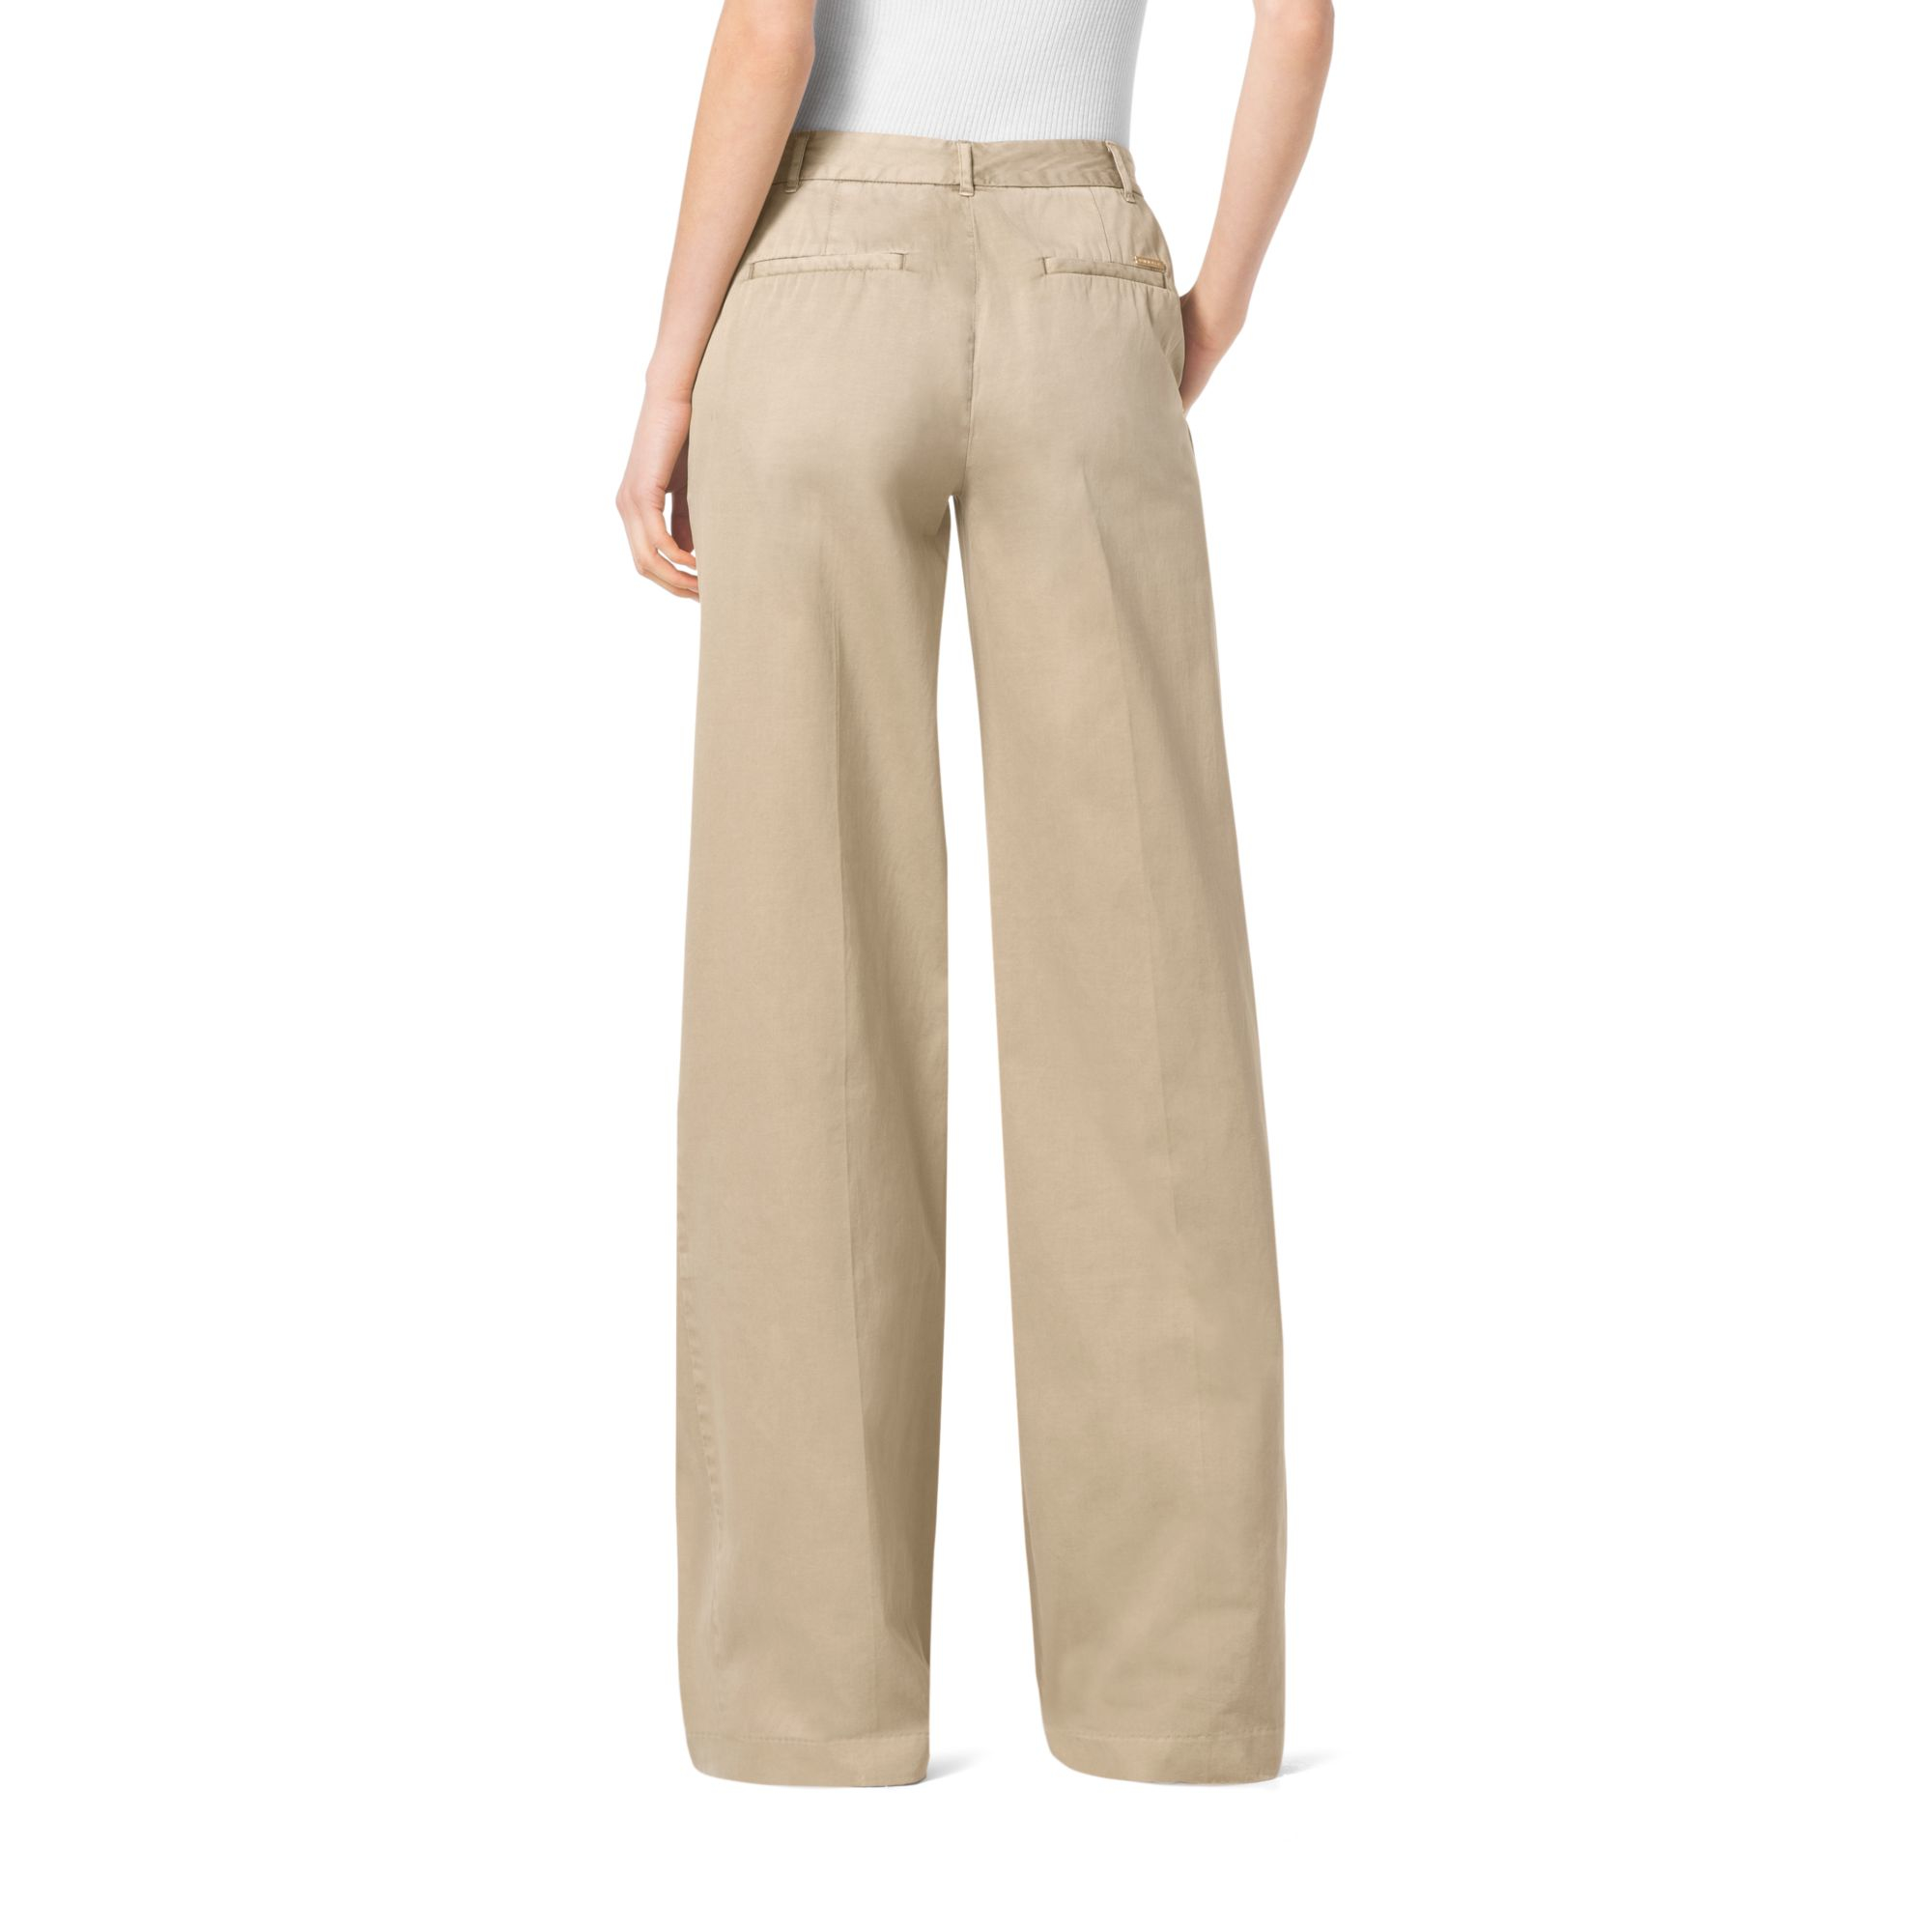 Michael kors Wide-leg Chino Trousers in Natural | Lyst